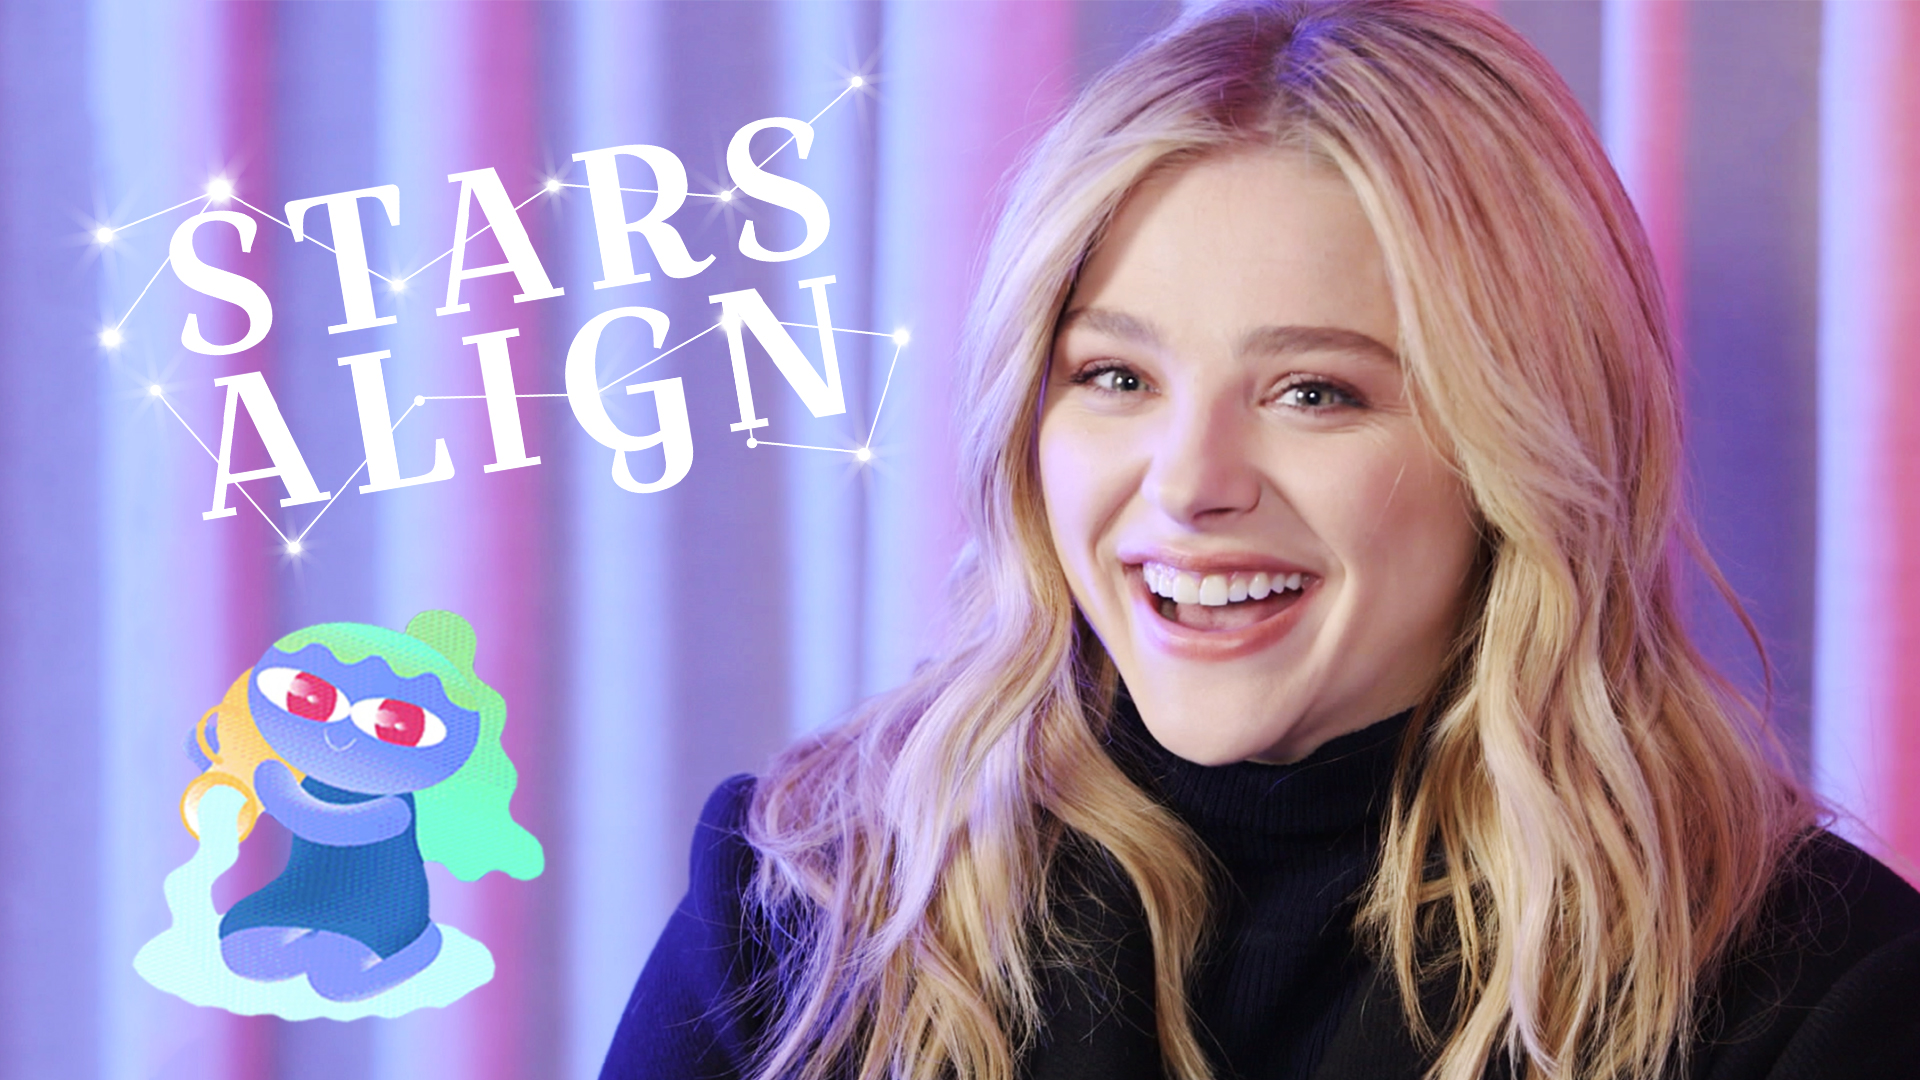 Chloë Grace Moretz Is the Ultimate Aquarius